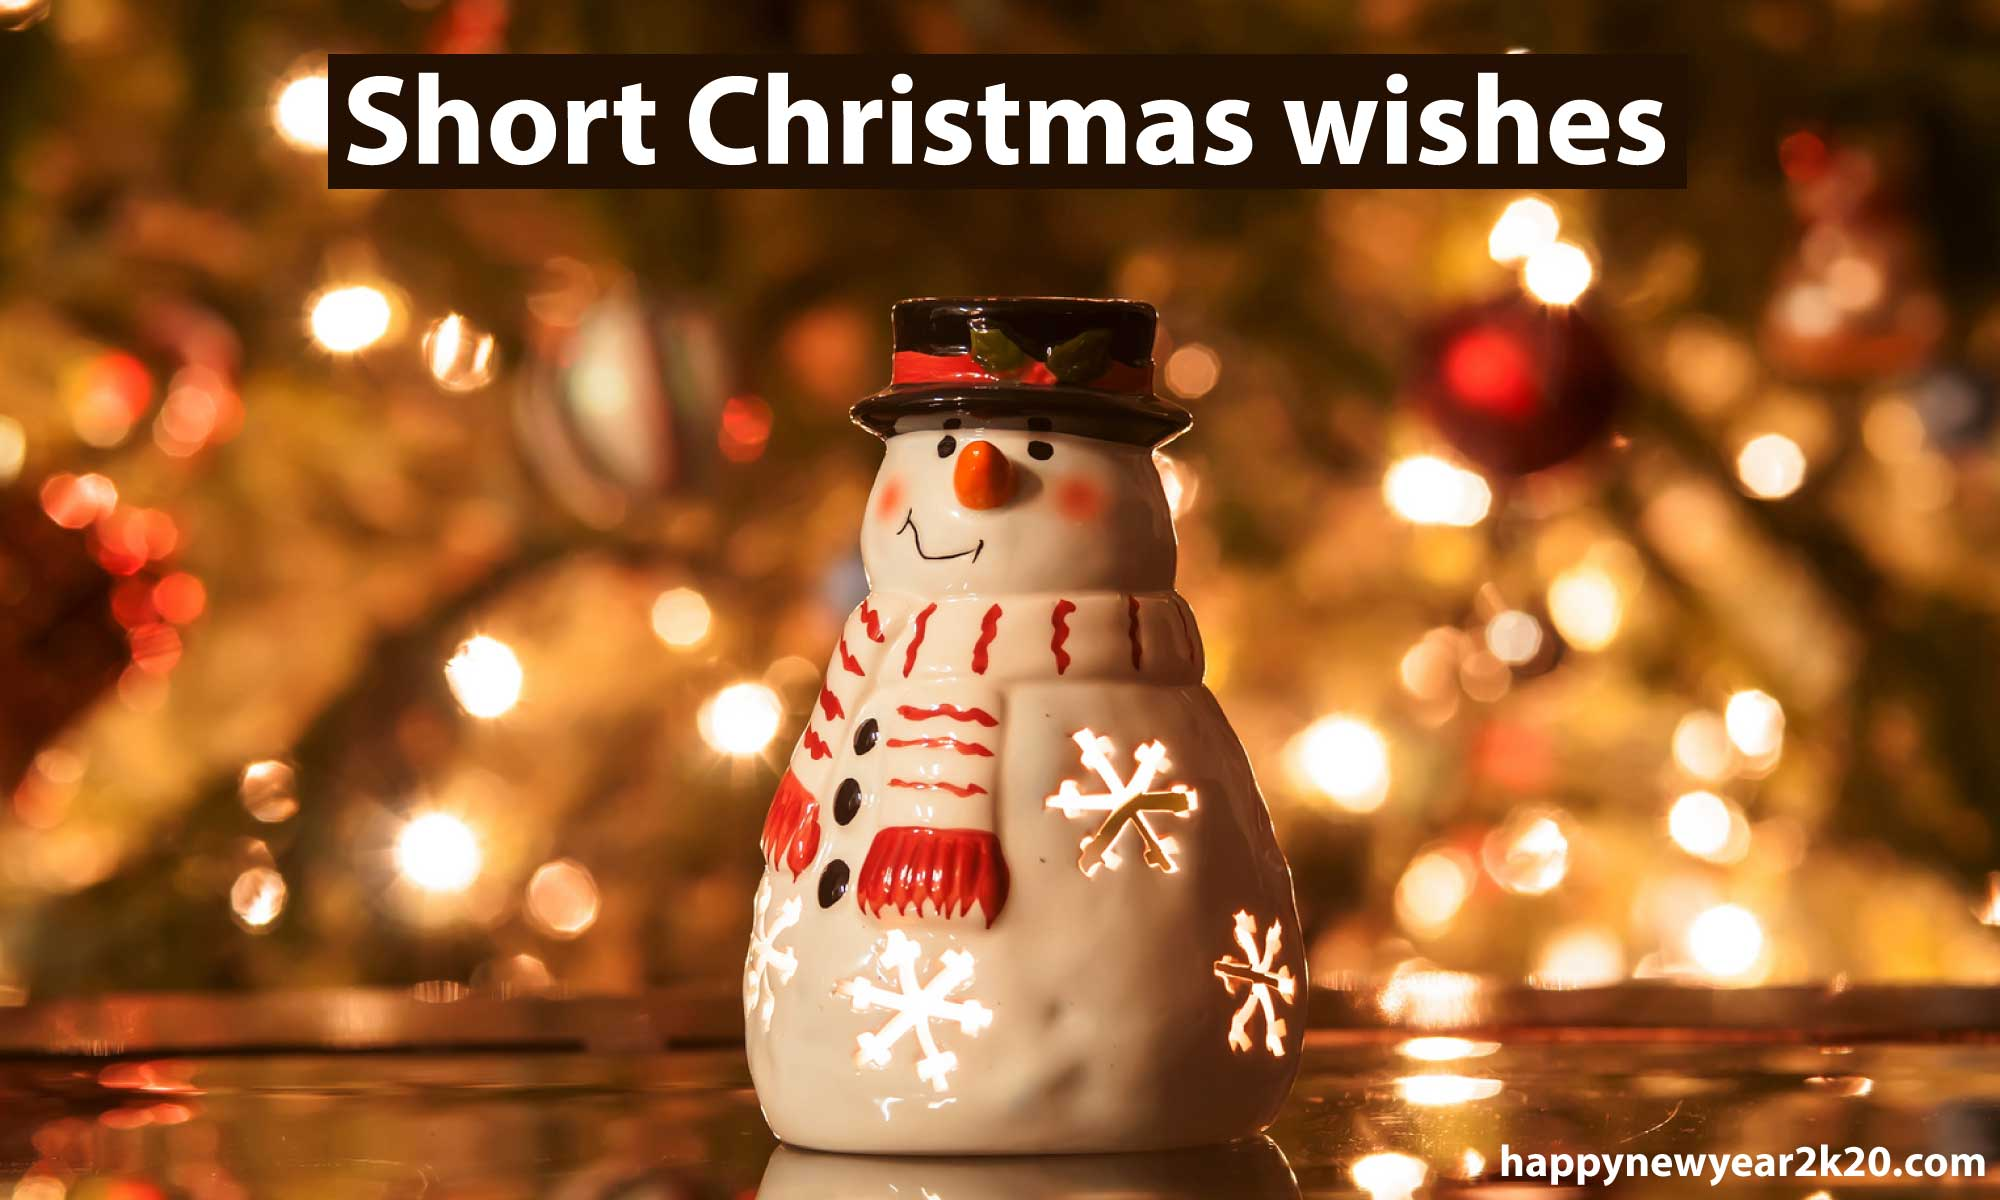 Short-Christmas-wishes